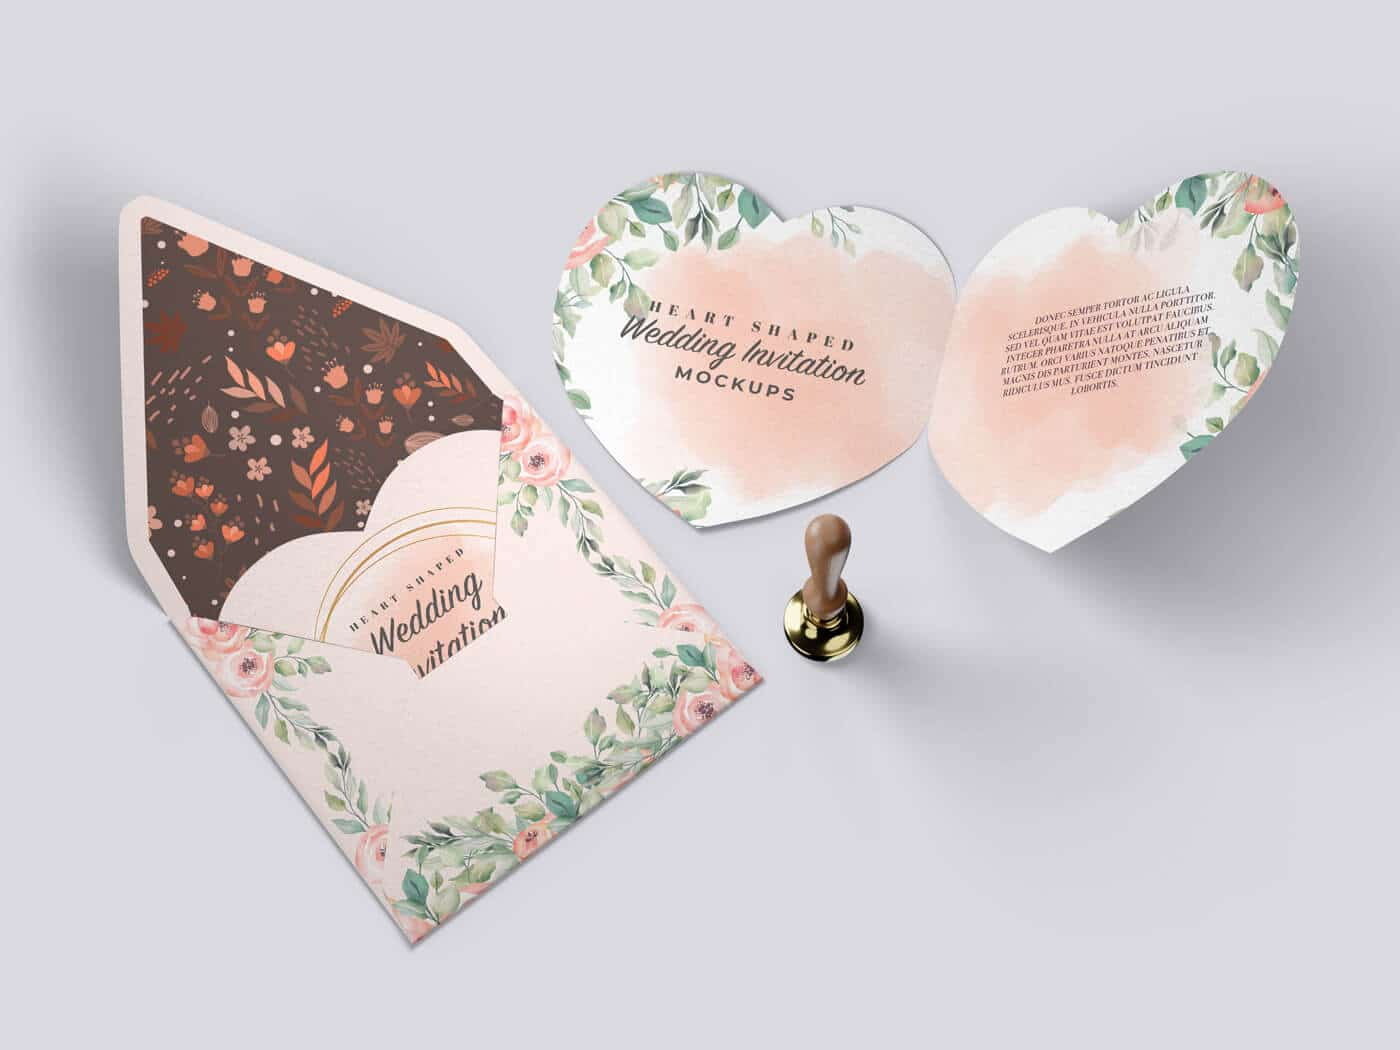 Heart Shaped Invitation Mockup 02